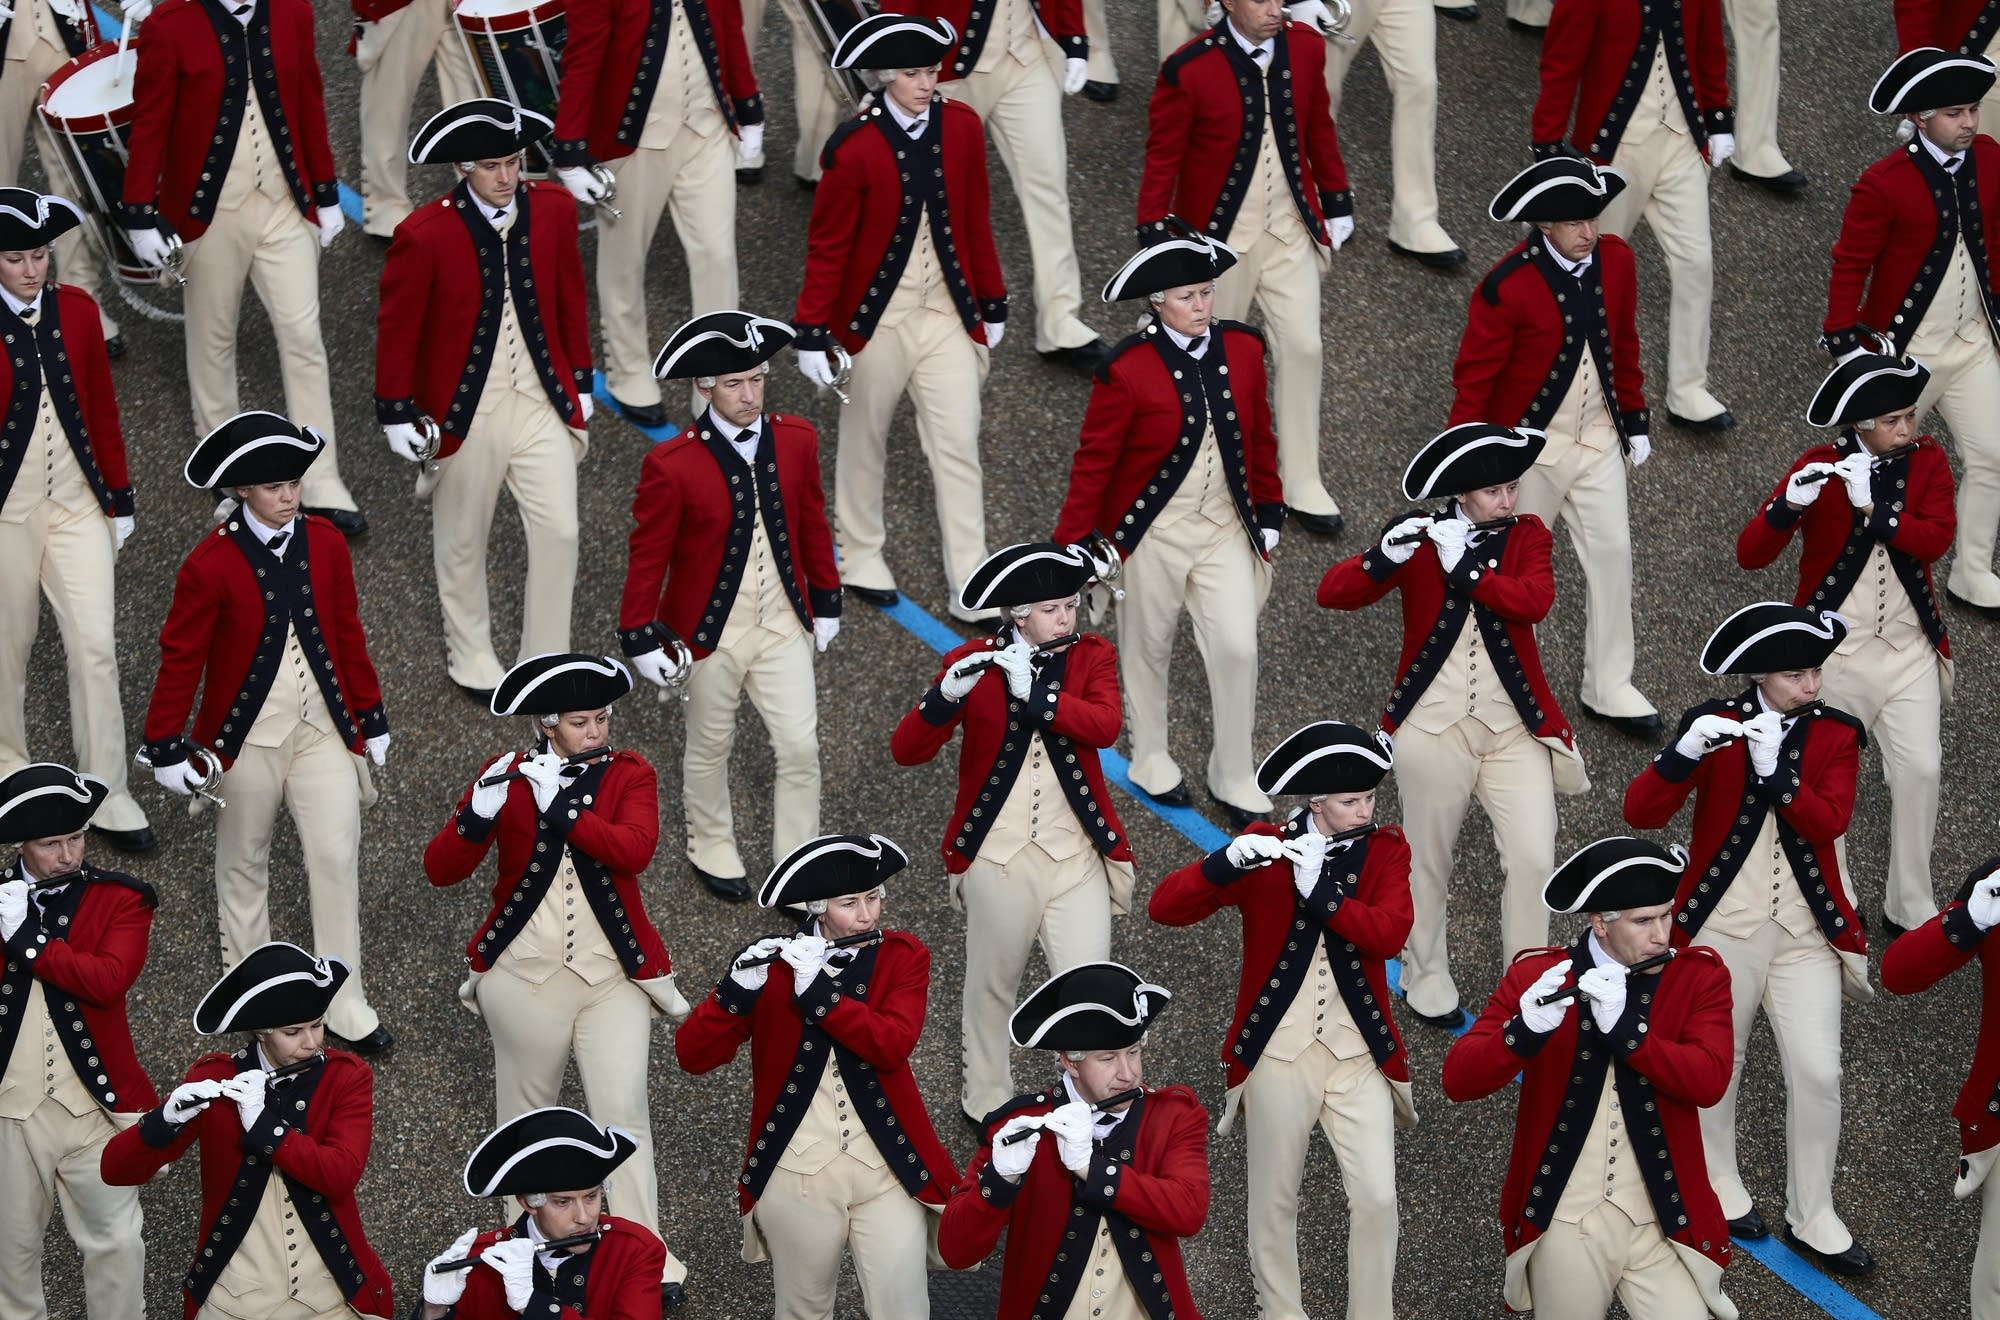 The U.S. Army Old Guard Fife and Drum Corps